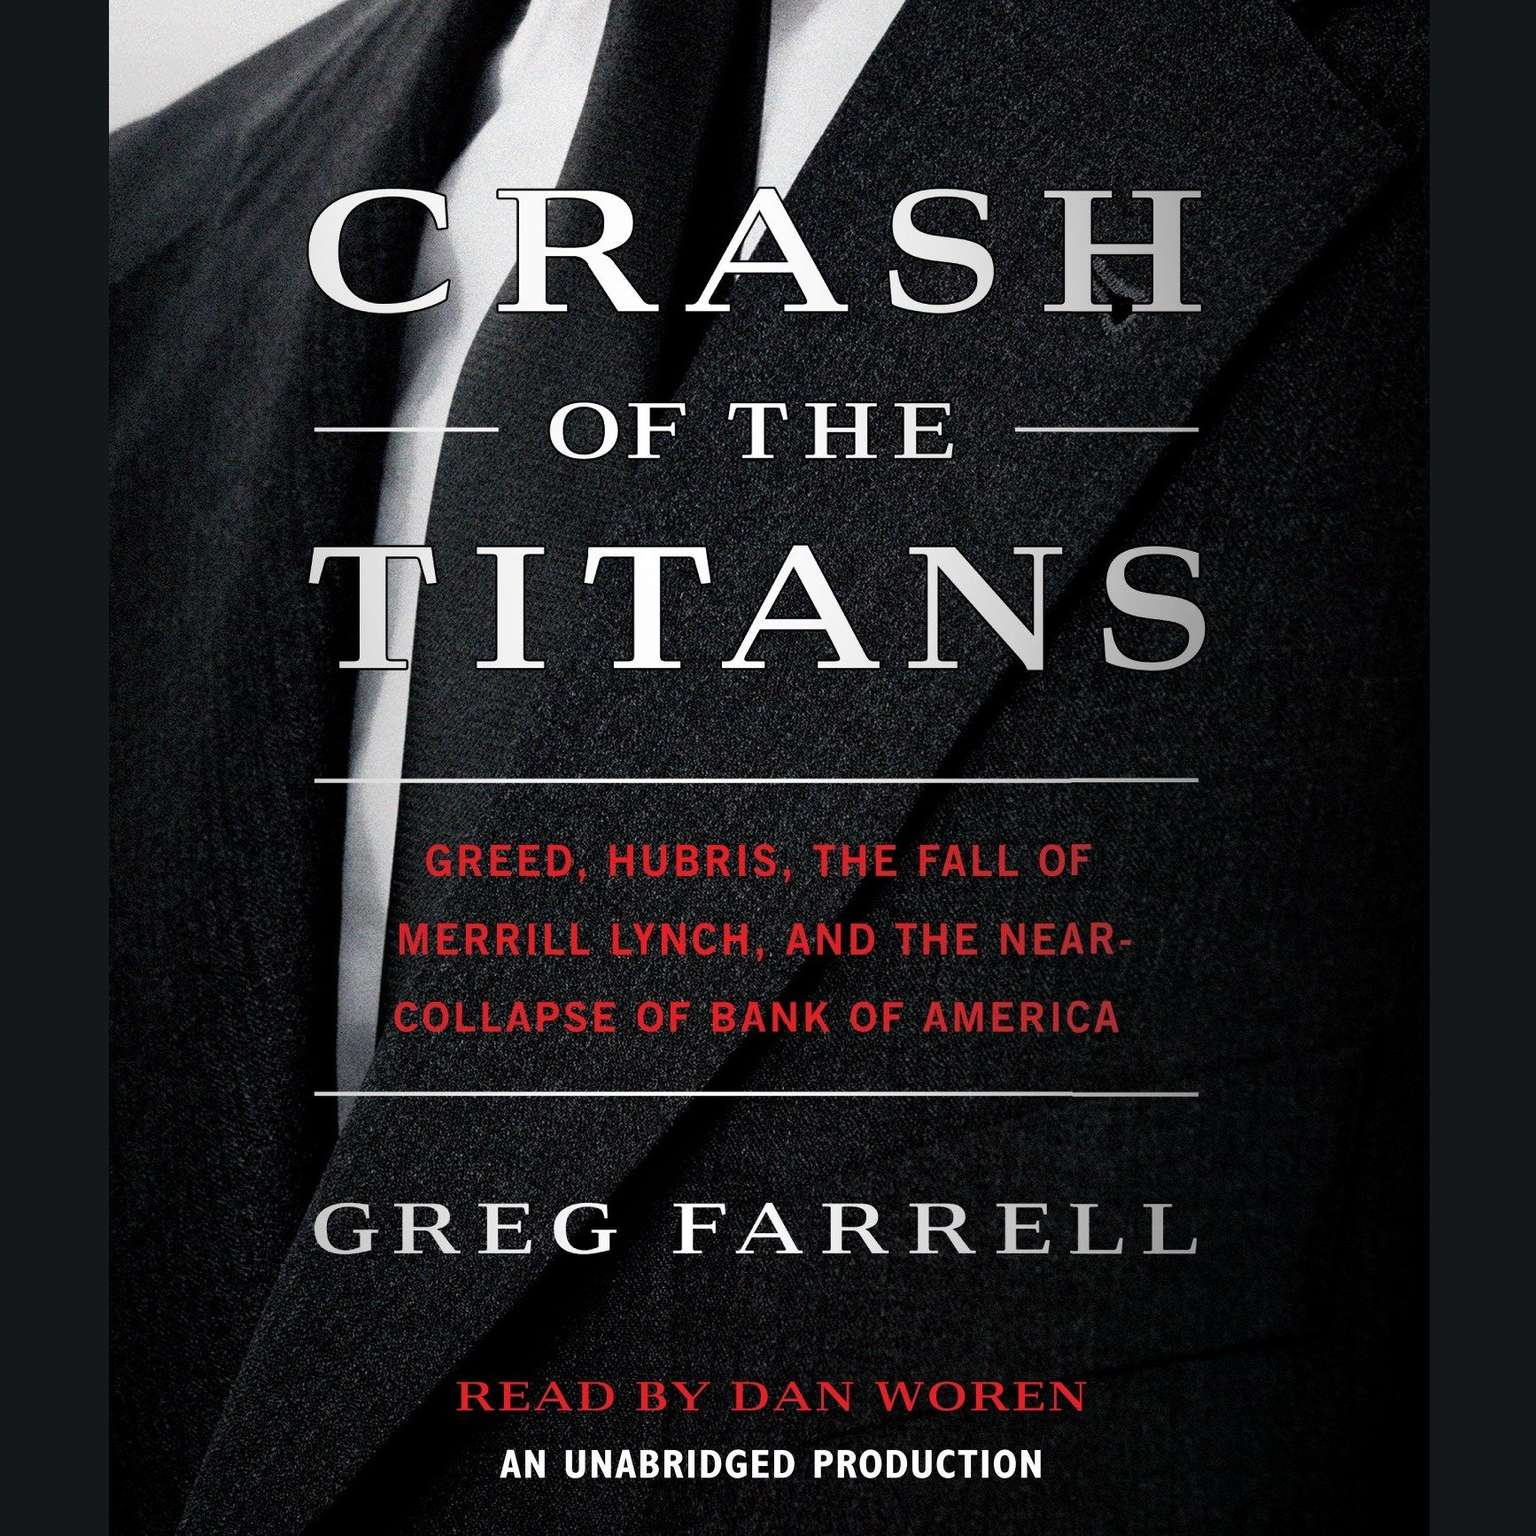 Printable Crash of the Titans: Greed, Hubris, the Fall of Merrill Lynch, and the Near-Collapse of Bank of America Audiobook Cover Art